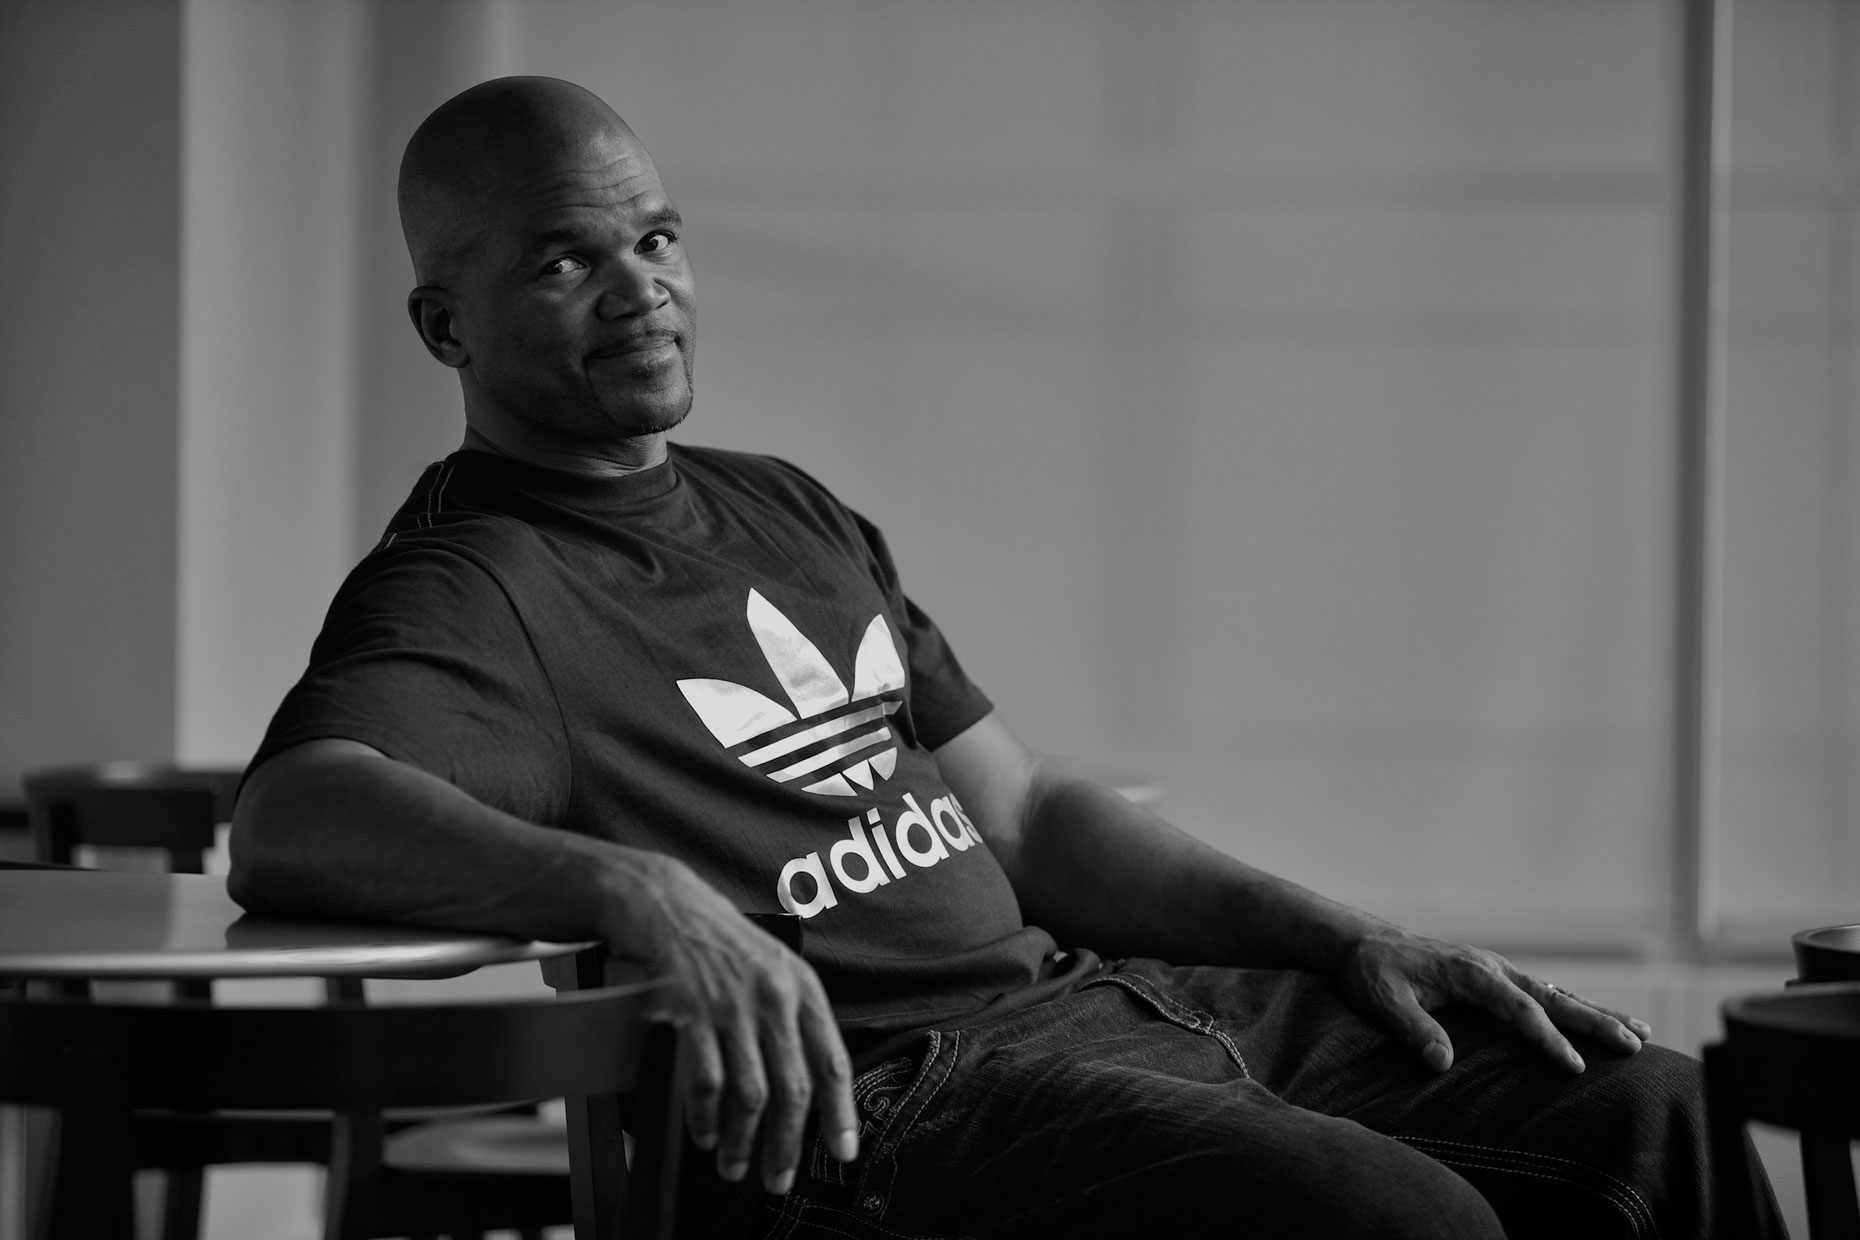 Darryl McDaniels of Run DMC for adidas, New York